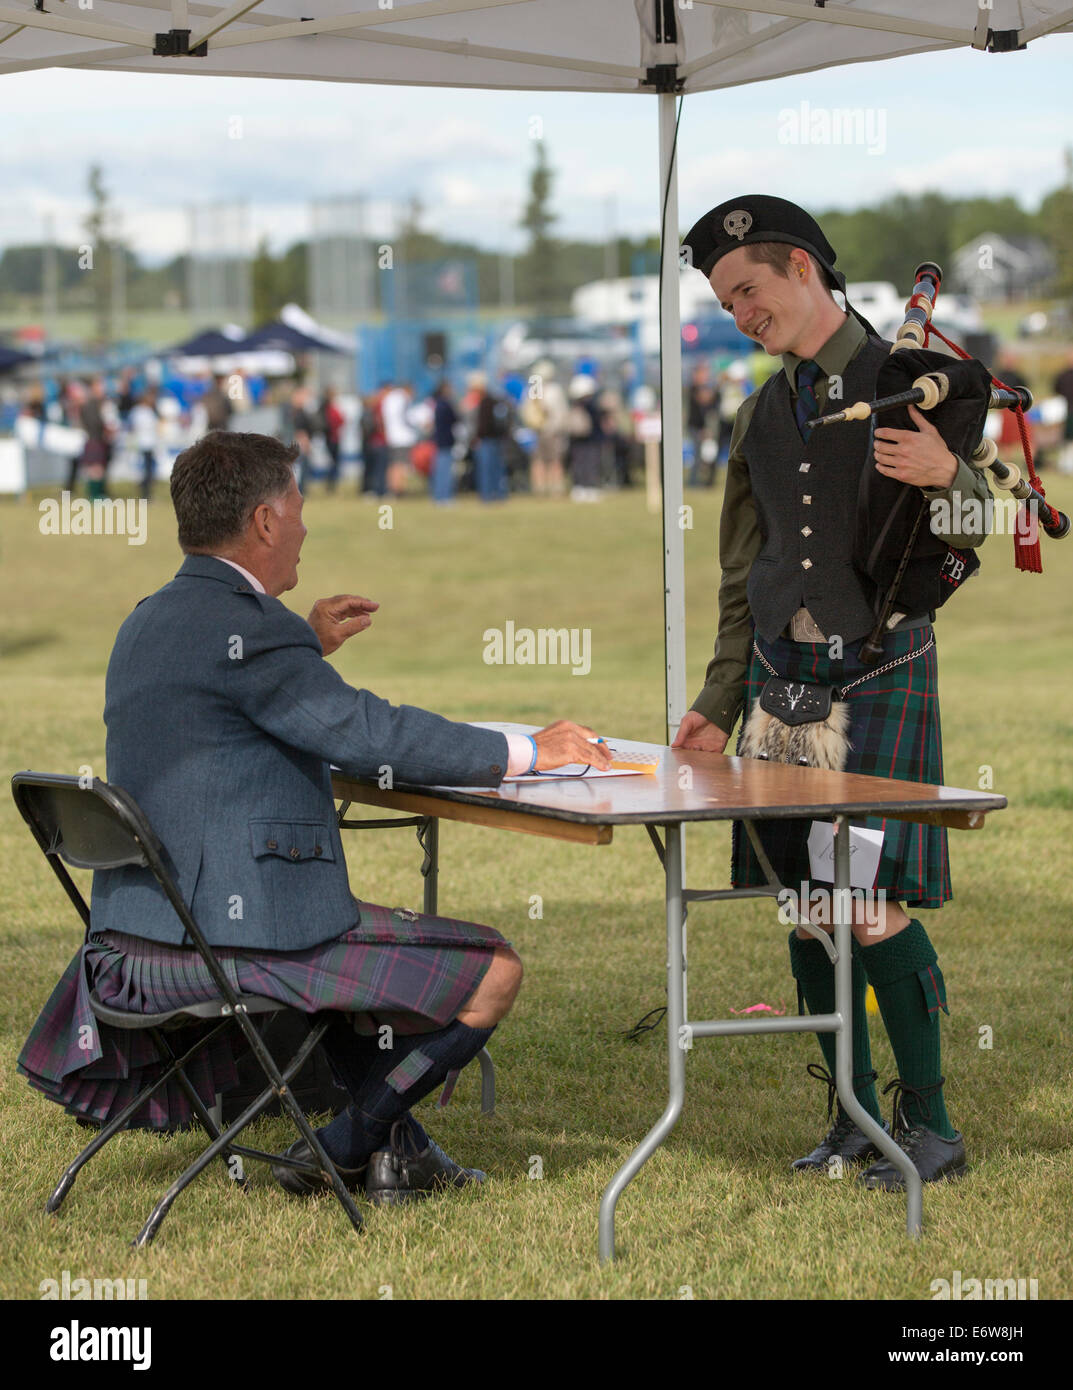 Calgary, Alberta, Canada. 30th Aug, 2014. Judge speaks with bagpipe competitor at the Calgary Highland Games, Calgary, - Stock Image